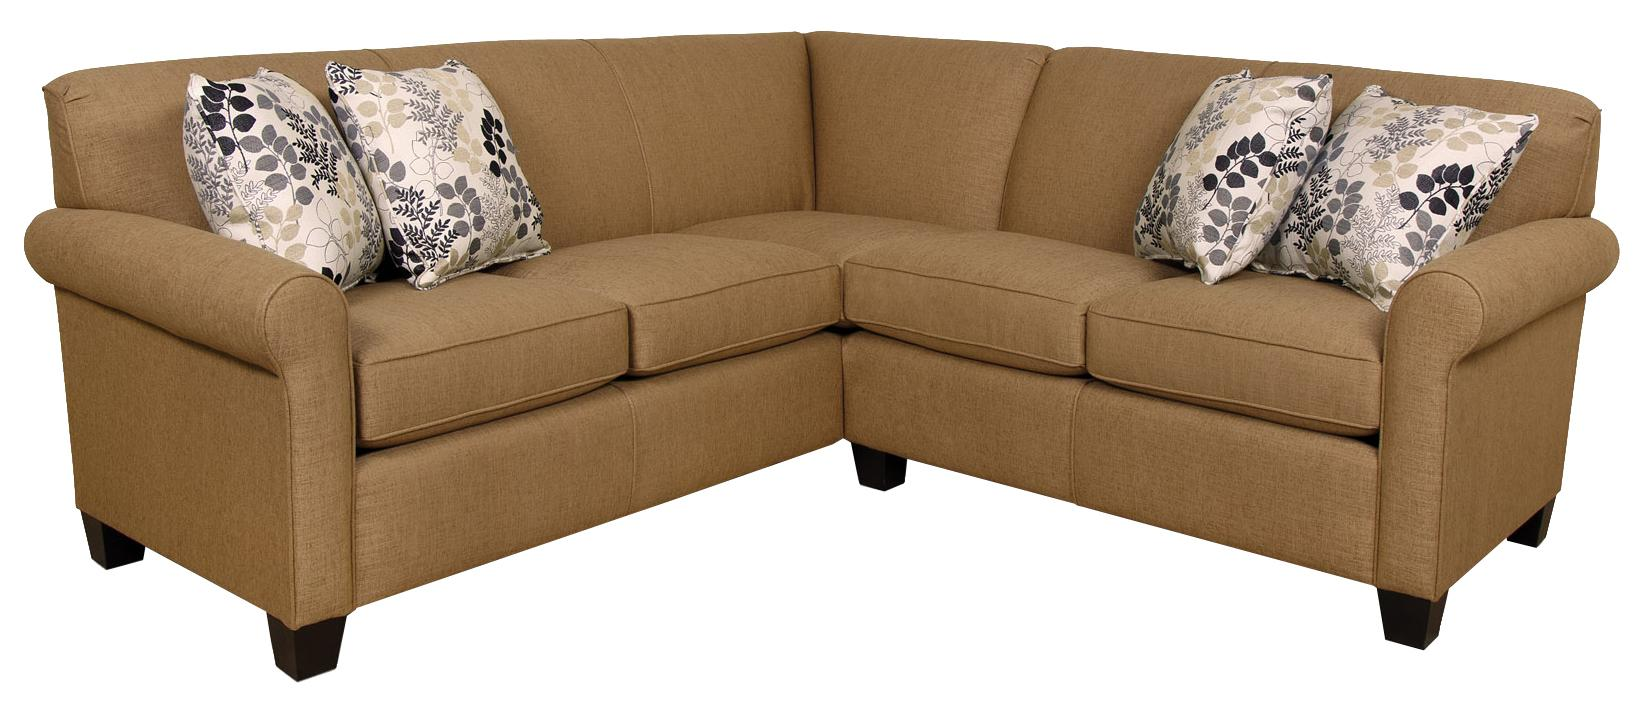 England Angie  Sectional Sofa - Item Number: 4630-64+28